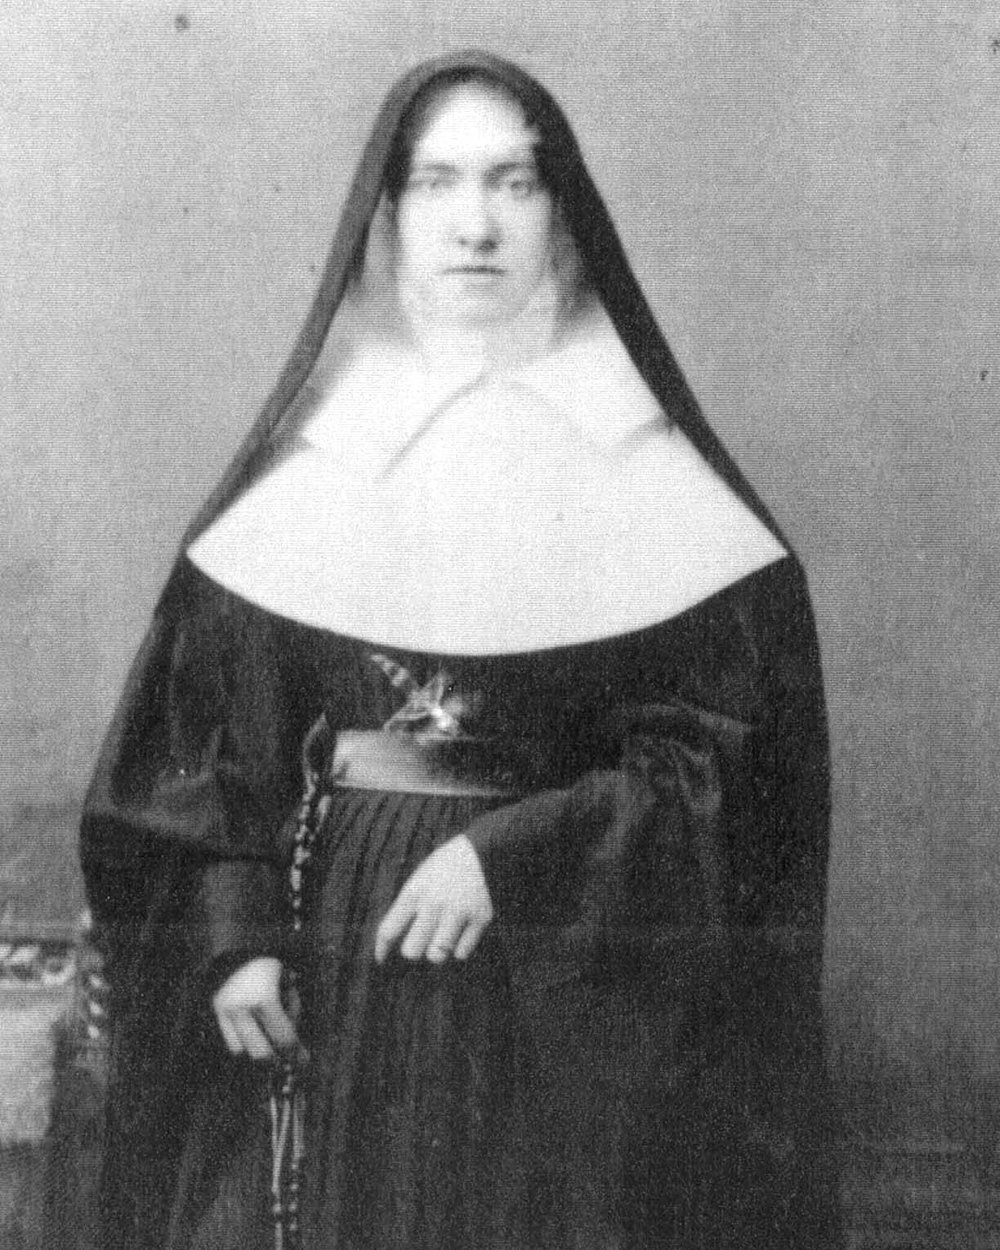 Sister Mary Angela, Source: